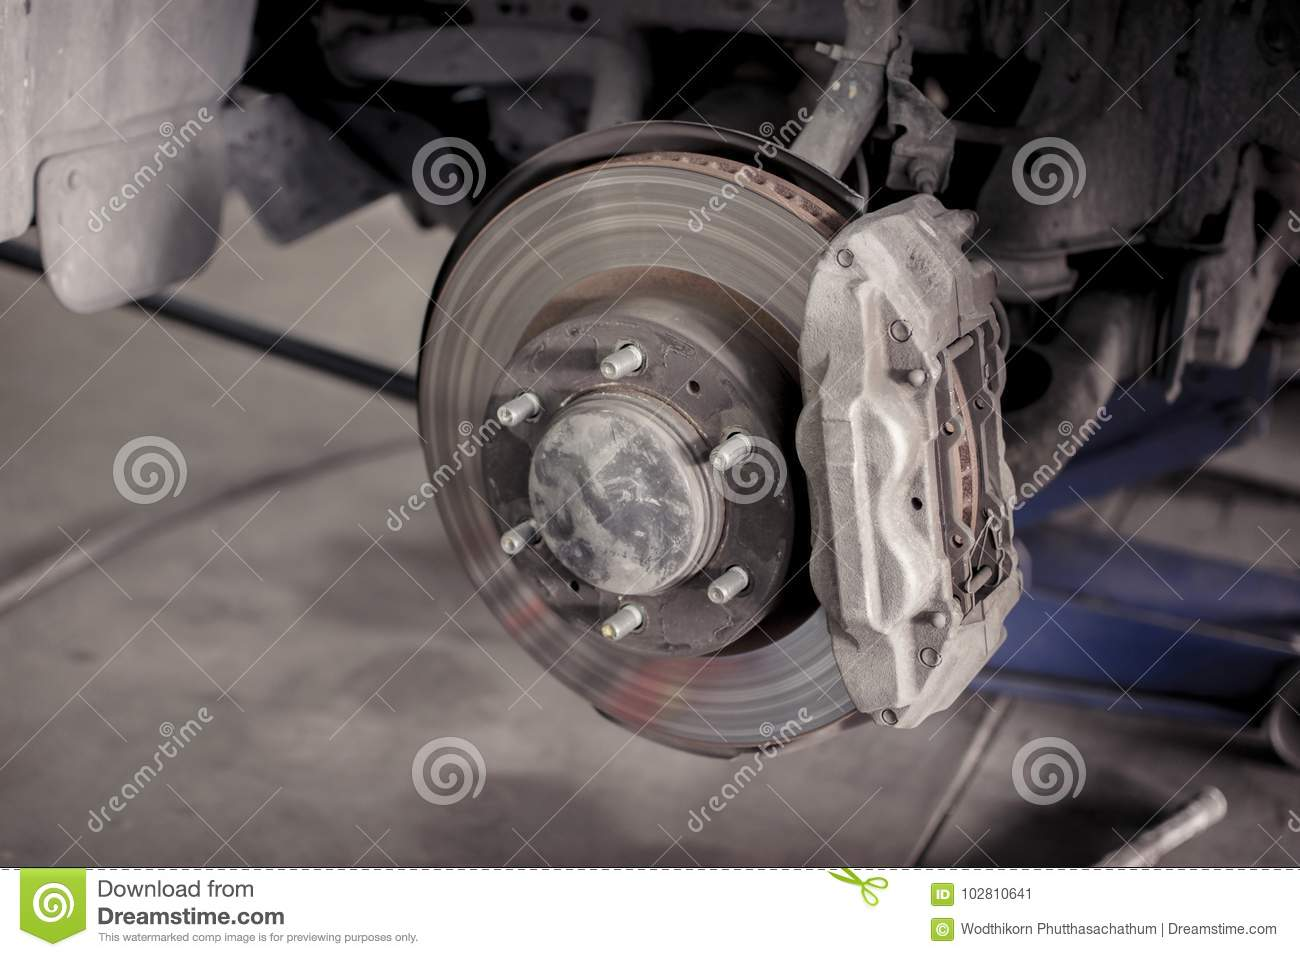 Brake Repair Shops >> Brake Disc System Of Car Stock Image Image Of Dirty 102810641